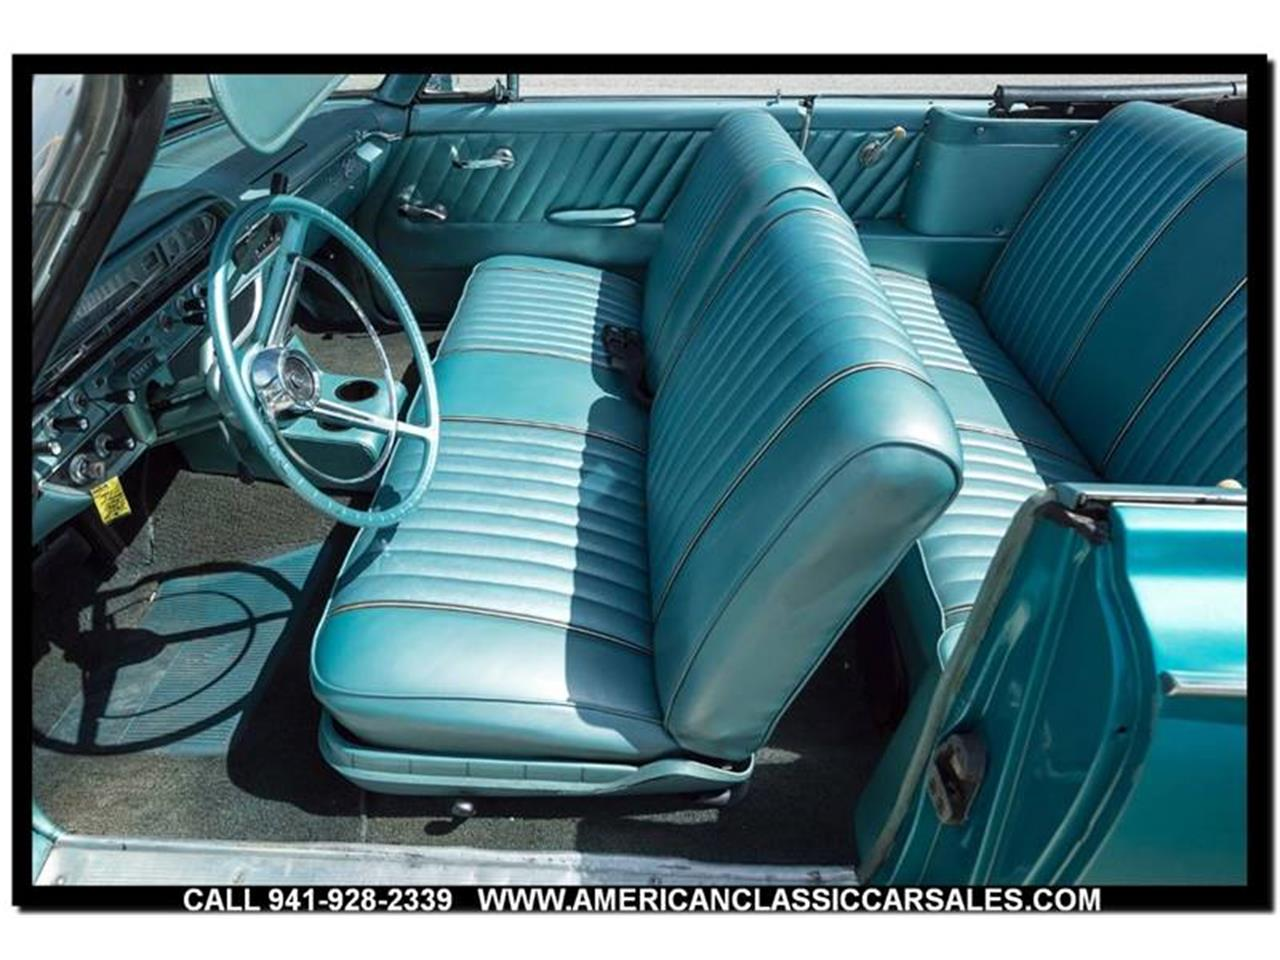 Large Picture of Classic '61 Ford Sunliner - $29,320.00 - LEJC